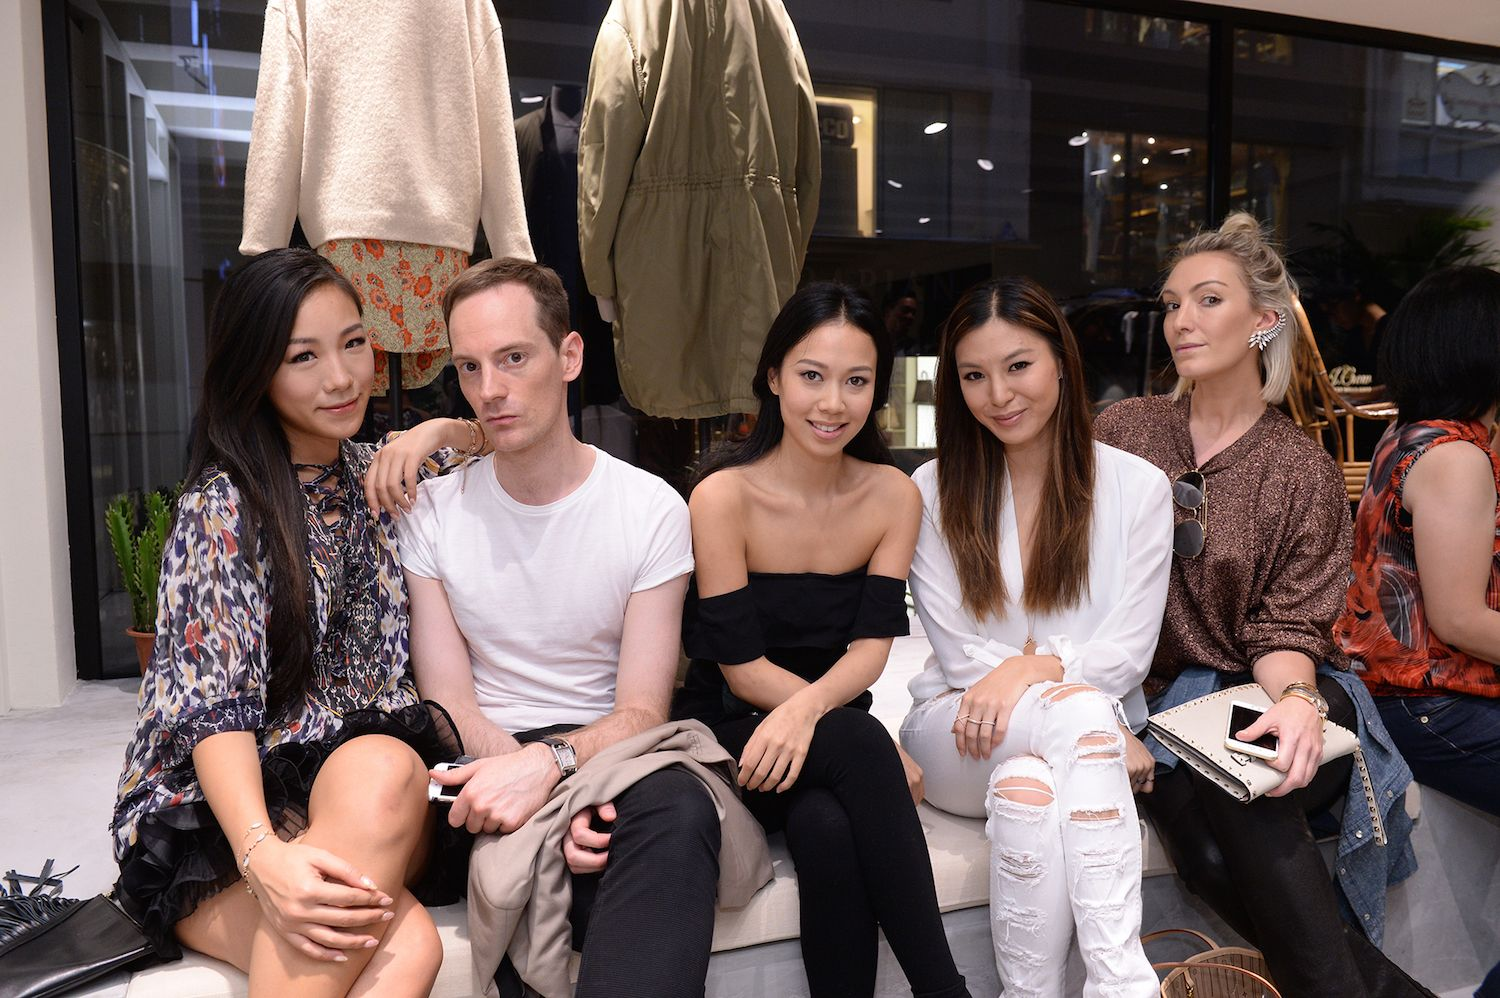 Feiping Chang, Arne Eggers, Claudine Ying, Alison Chan-El Azar, and Olivia Croucher Buckingham